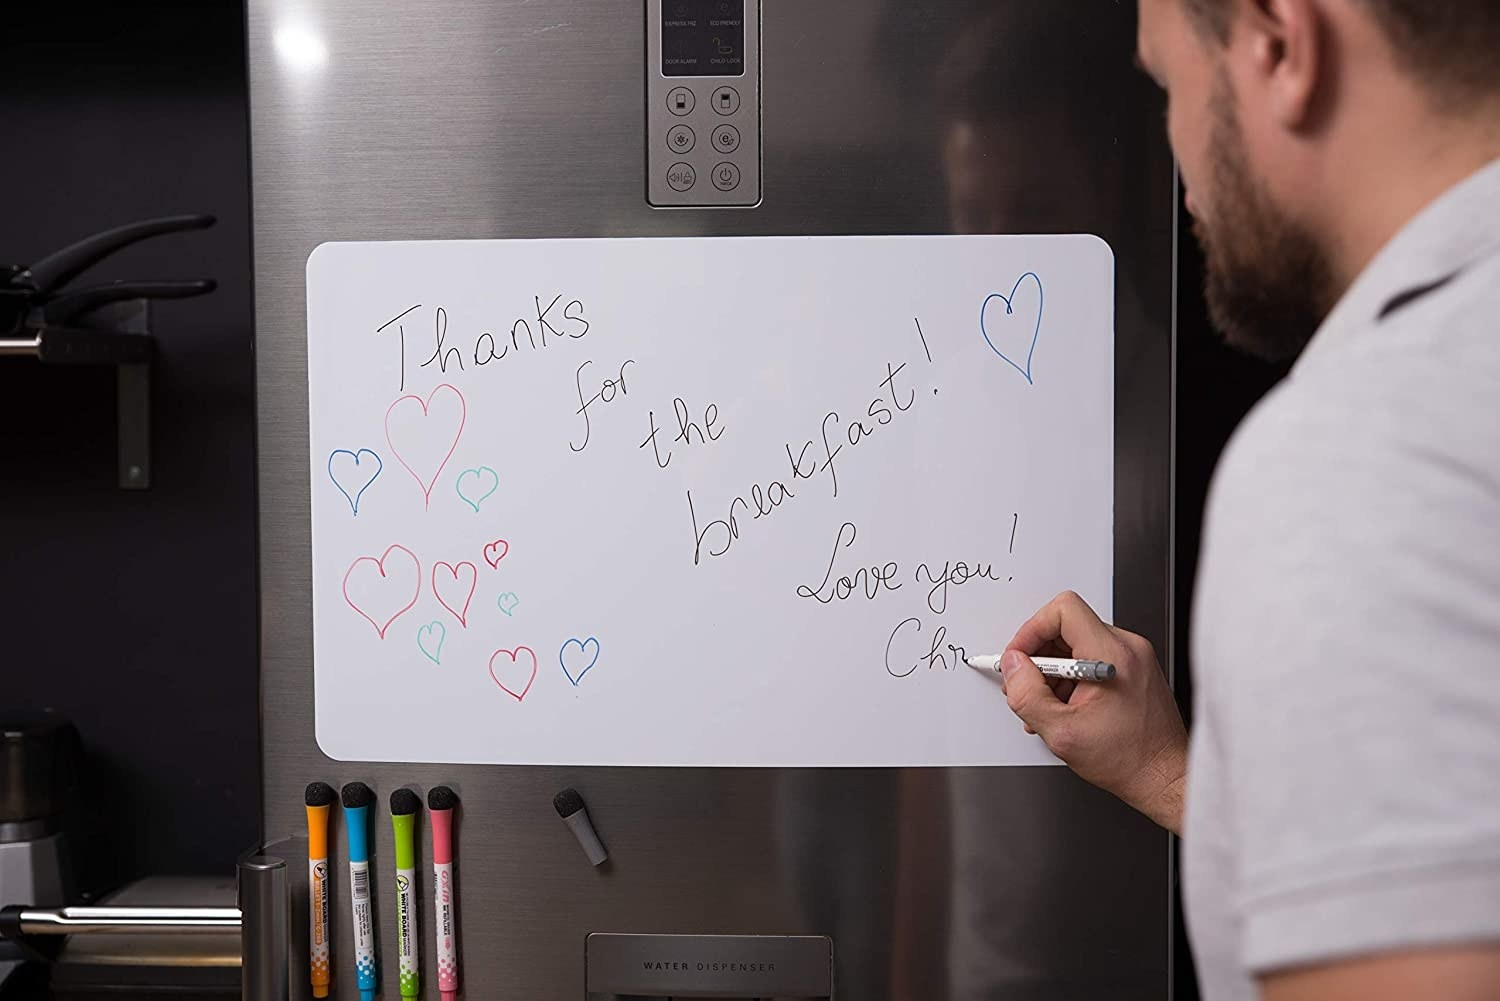 Someone writing on the magnetic whiteboard that's mounted on a fridge